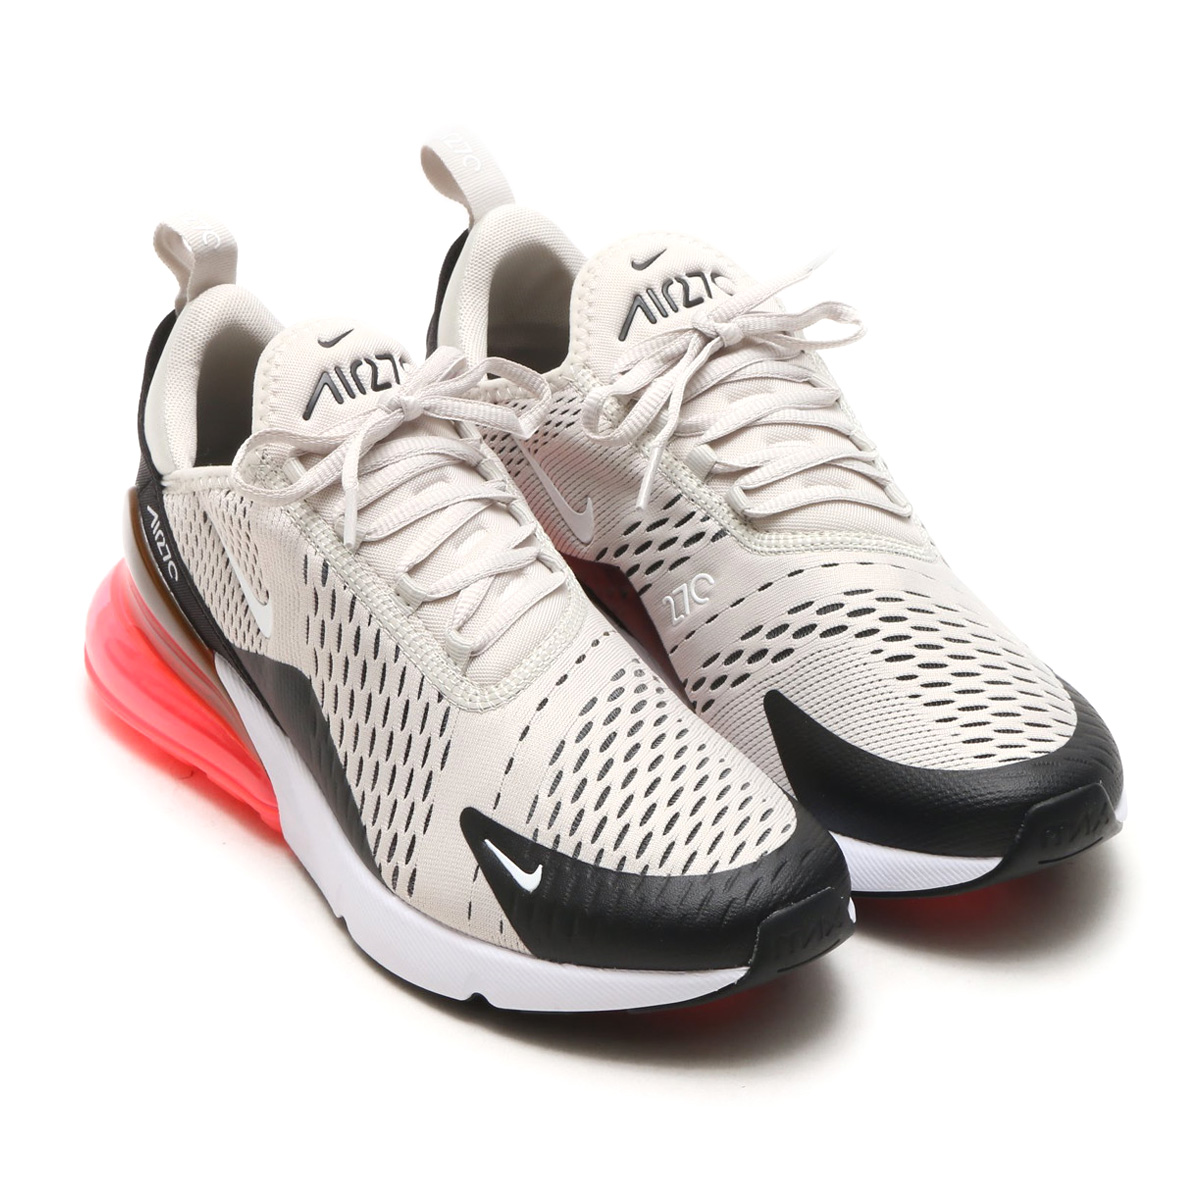 uk availability 7873d 13677 NIKE AIR MAX 270 (Kie Ney AMAX 270) (BLACKLIGHT BONE-HOT PUNCH-WHITE)  18SP-S